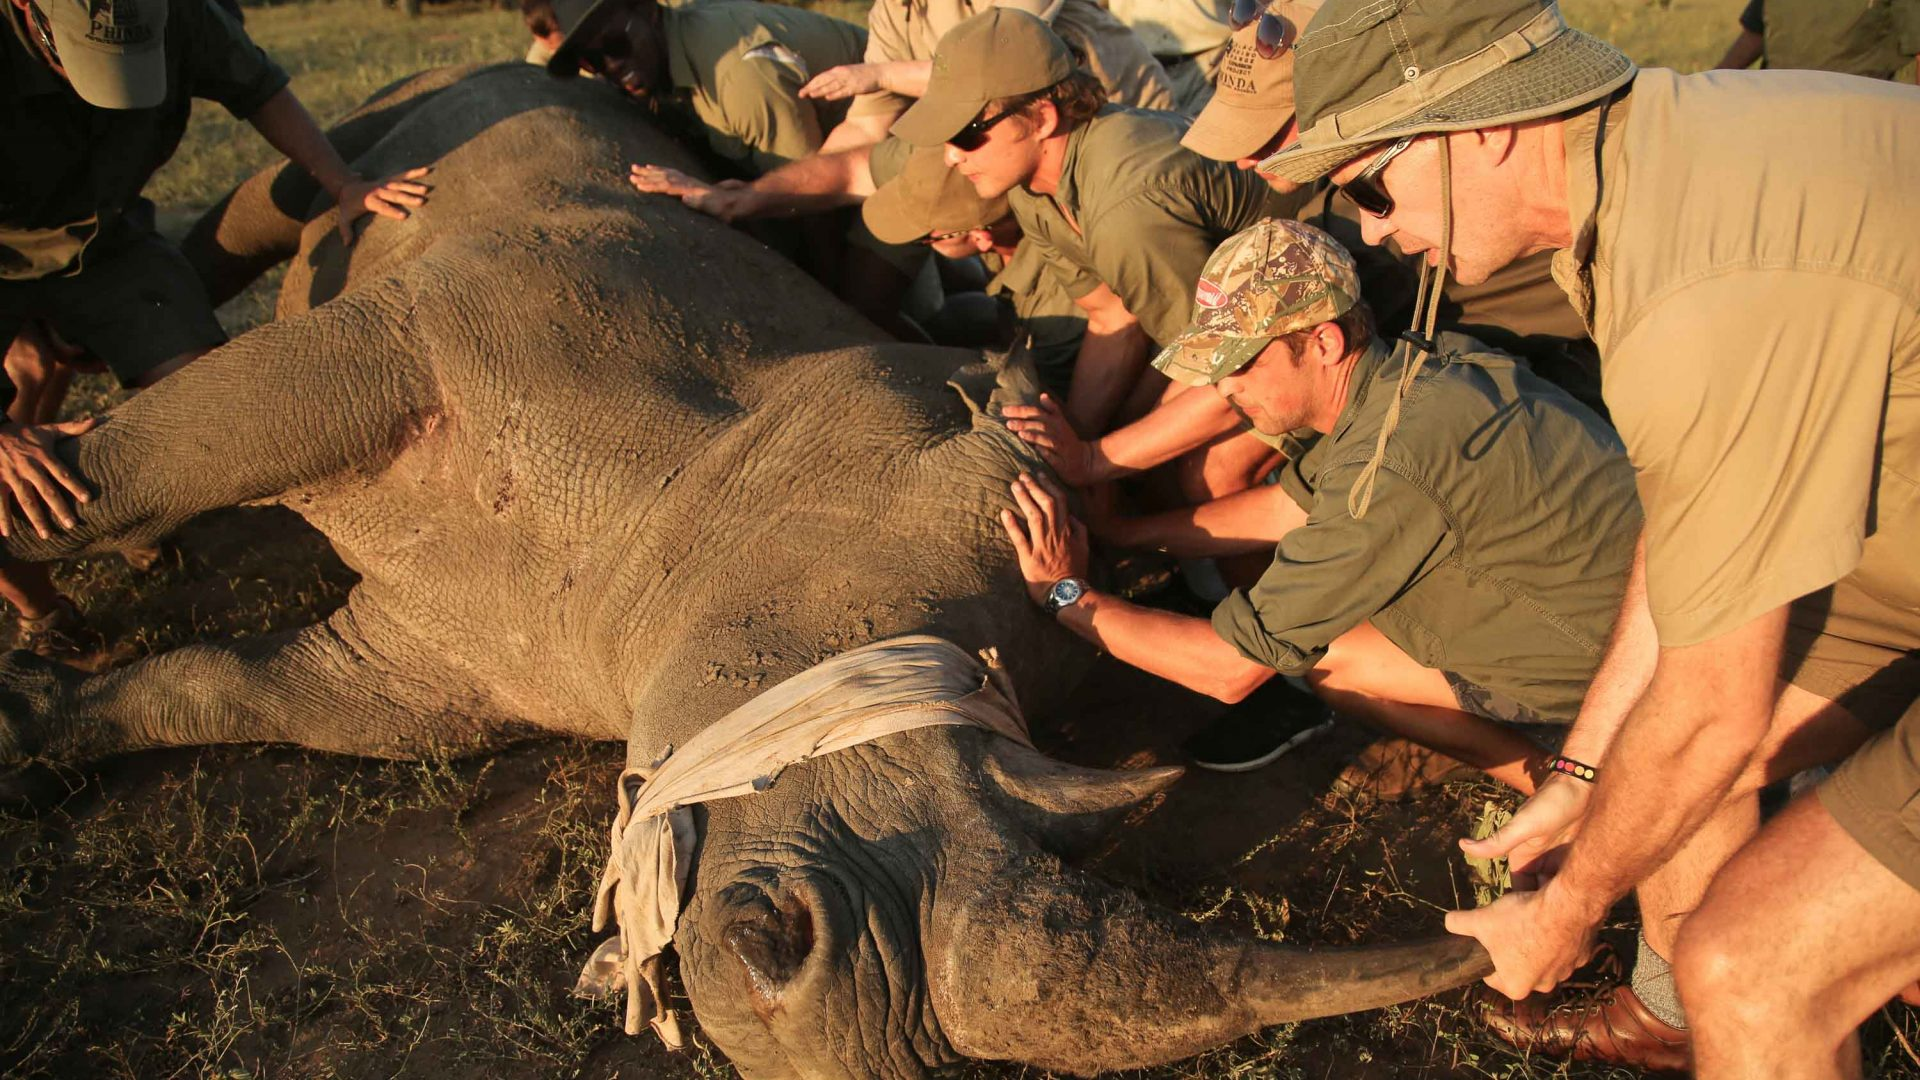 A team of people works to dehorn a rhino.